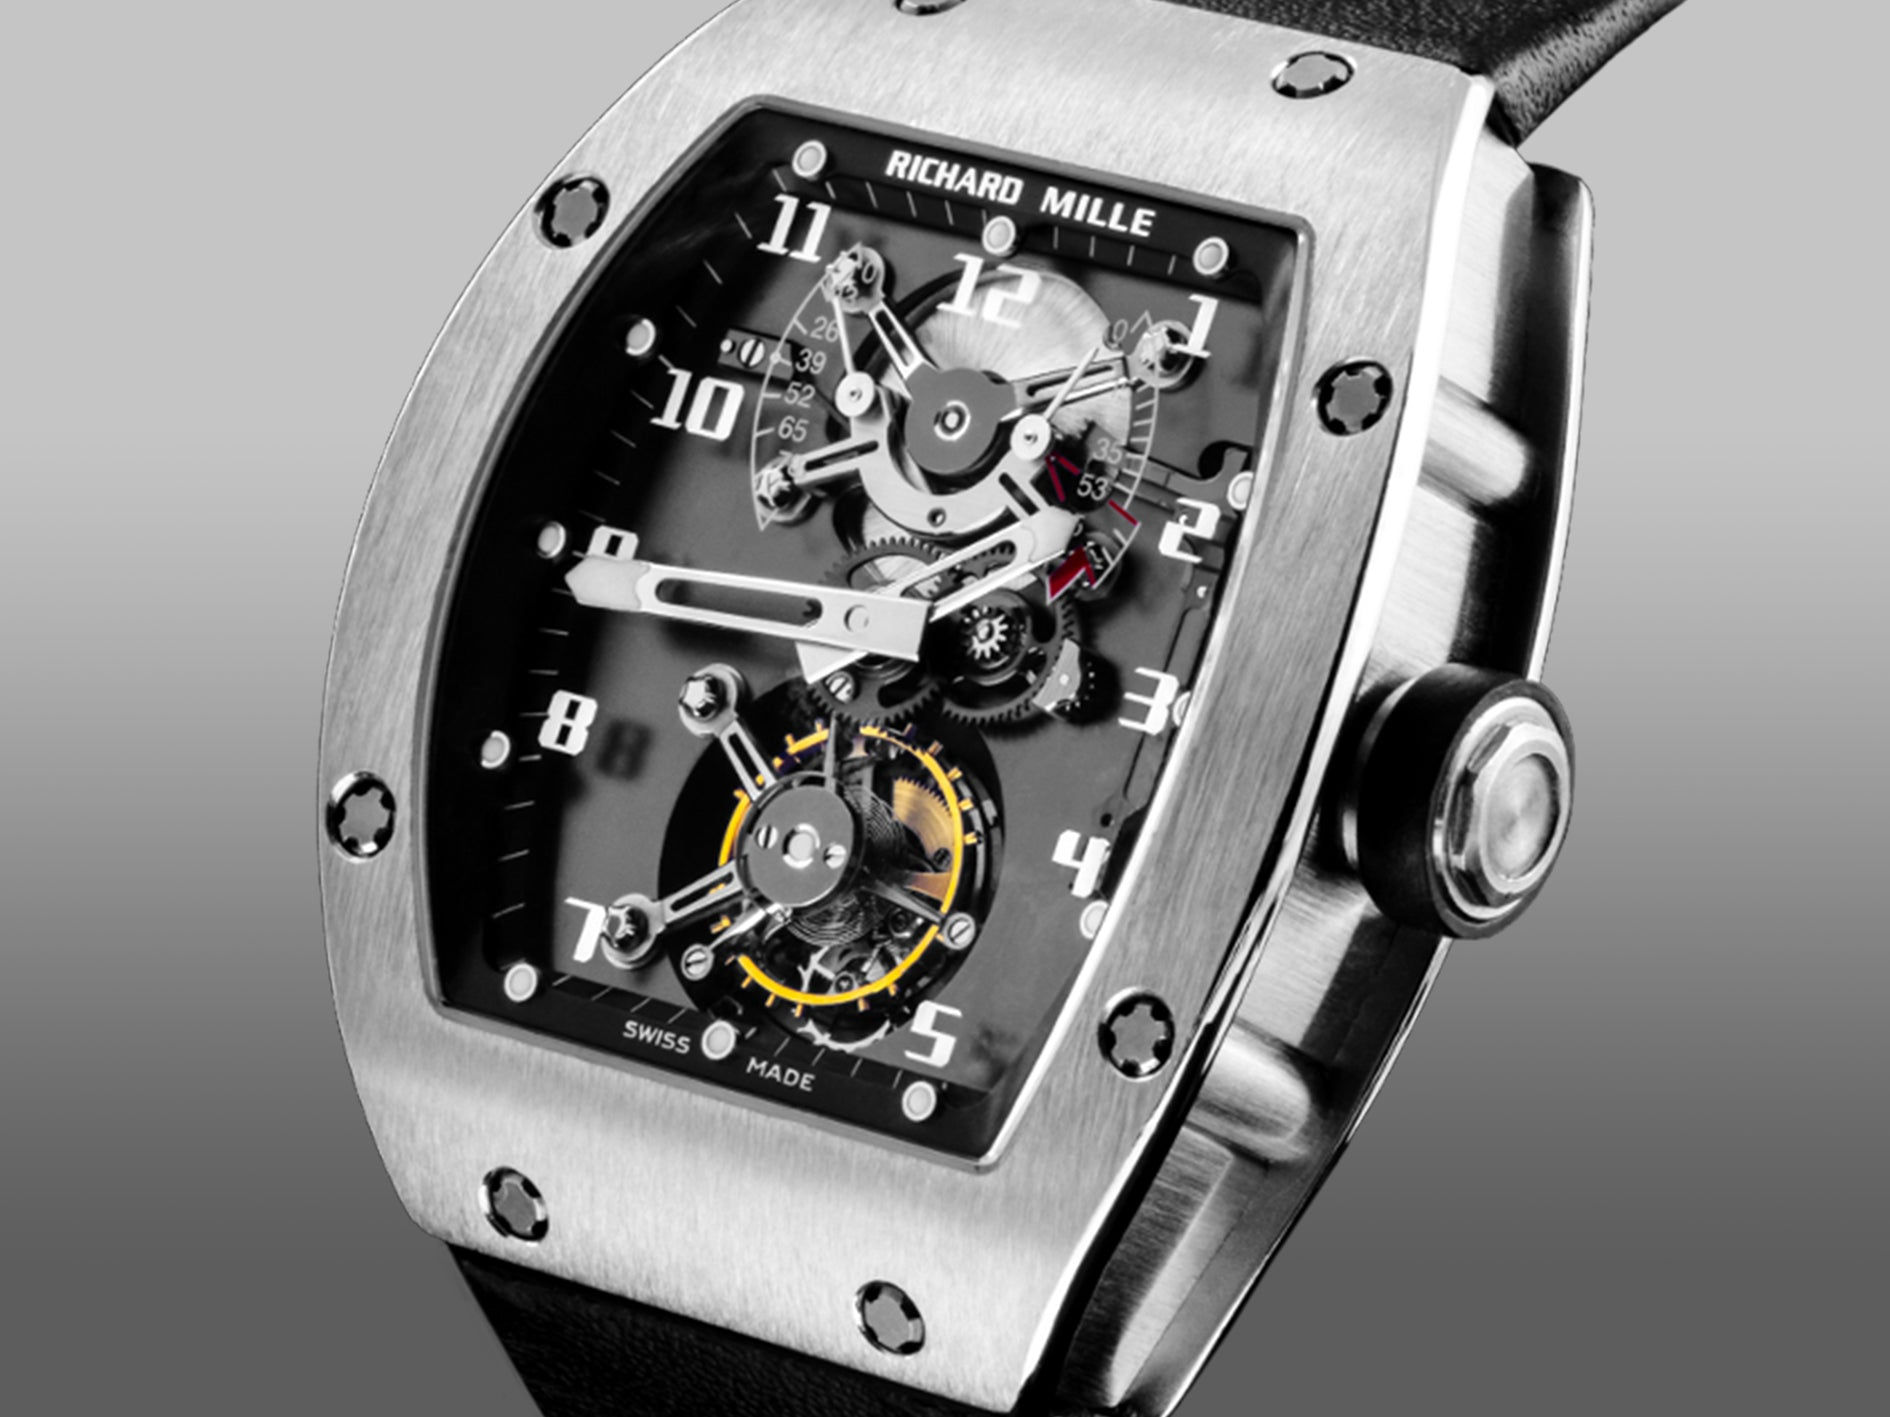 Richard Mille RM001 with a movement made by Renaud et Papi for A Collected Man London